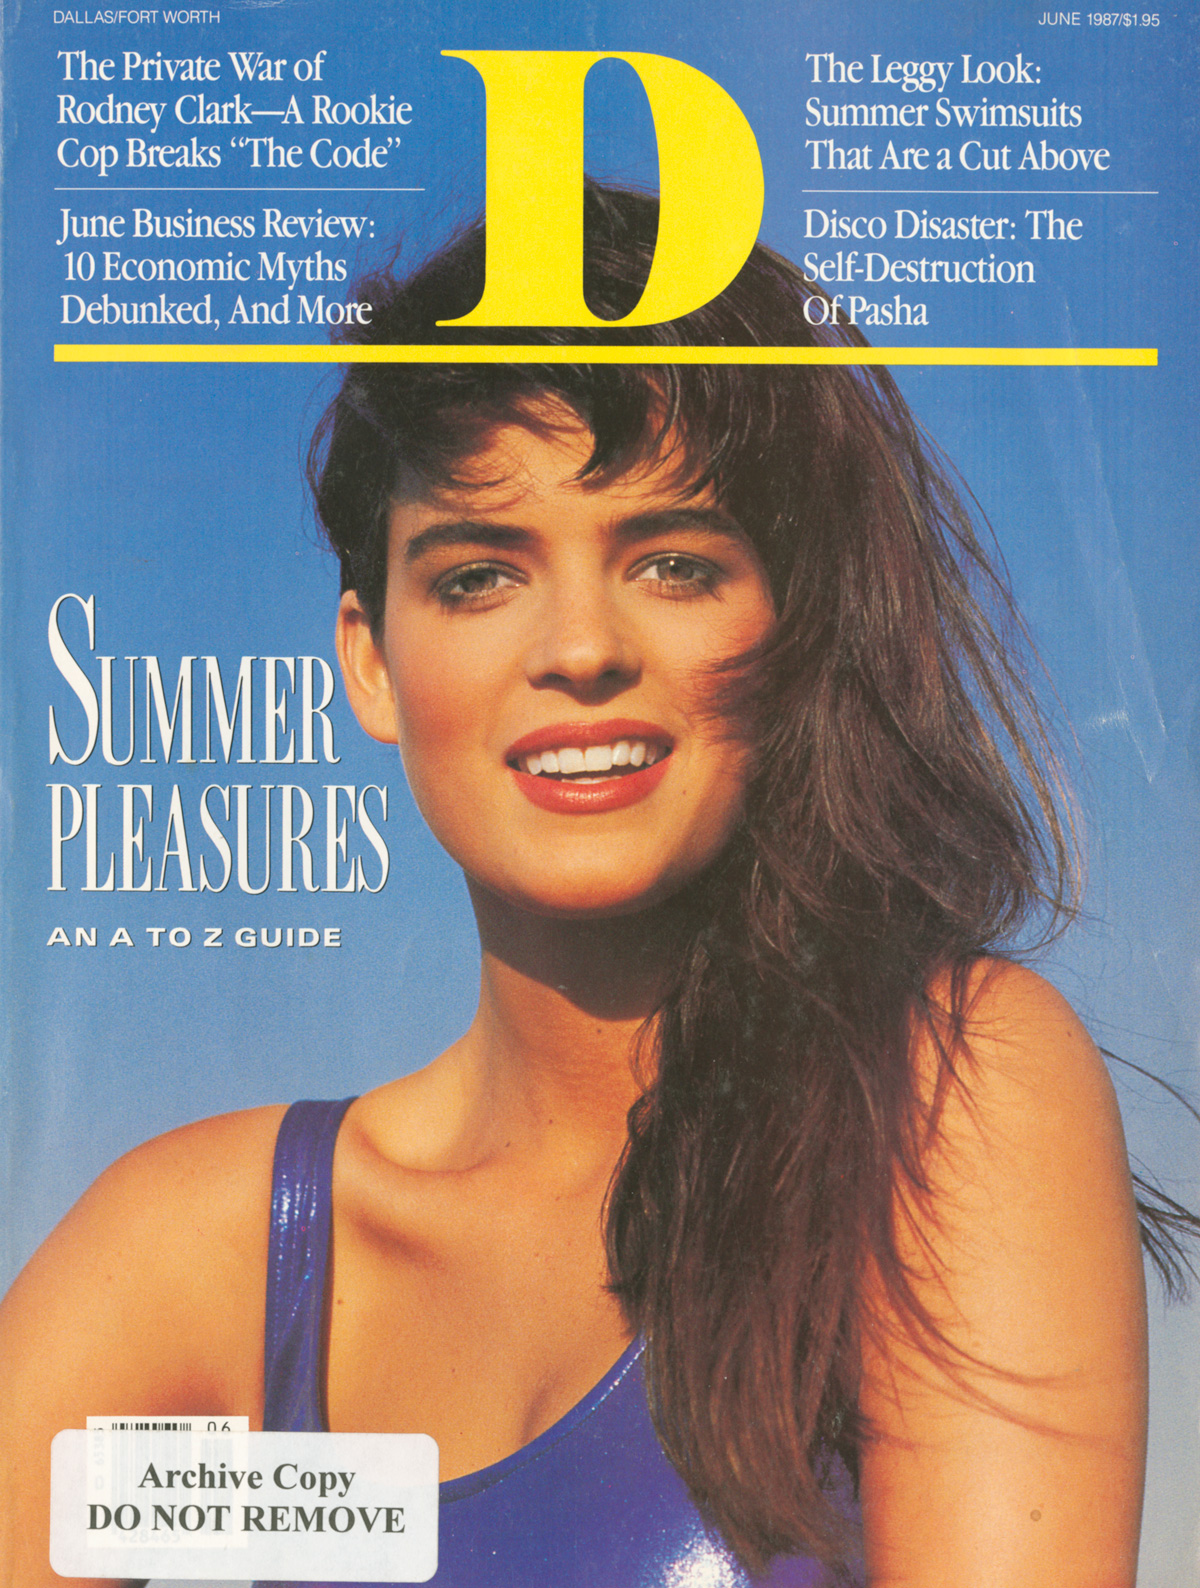 June 1987 cover